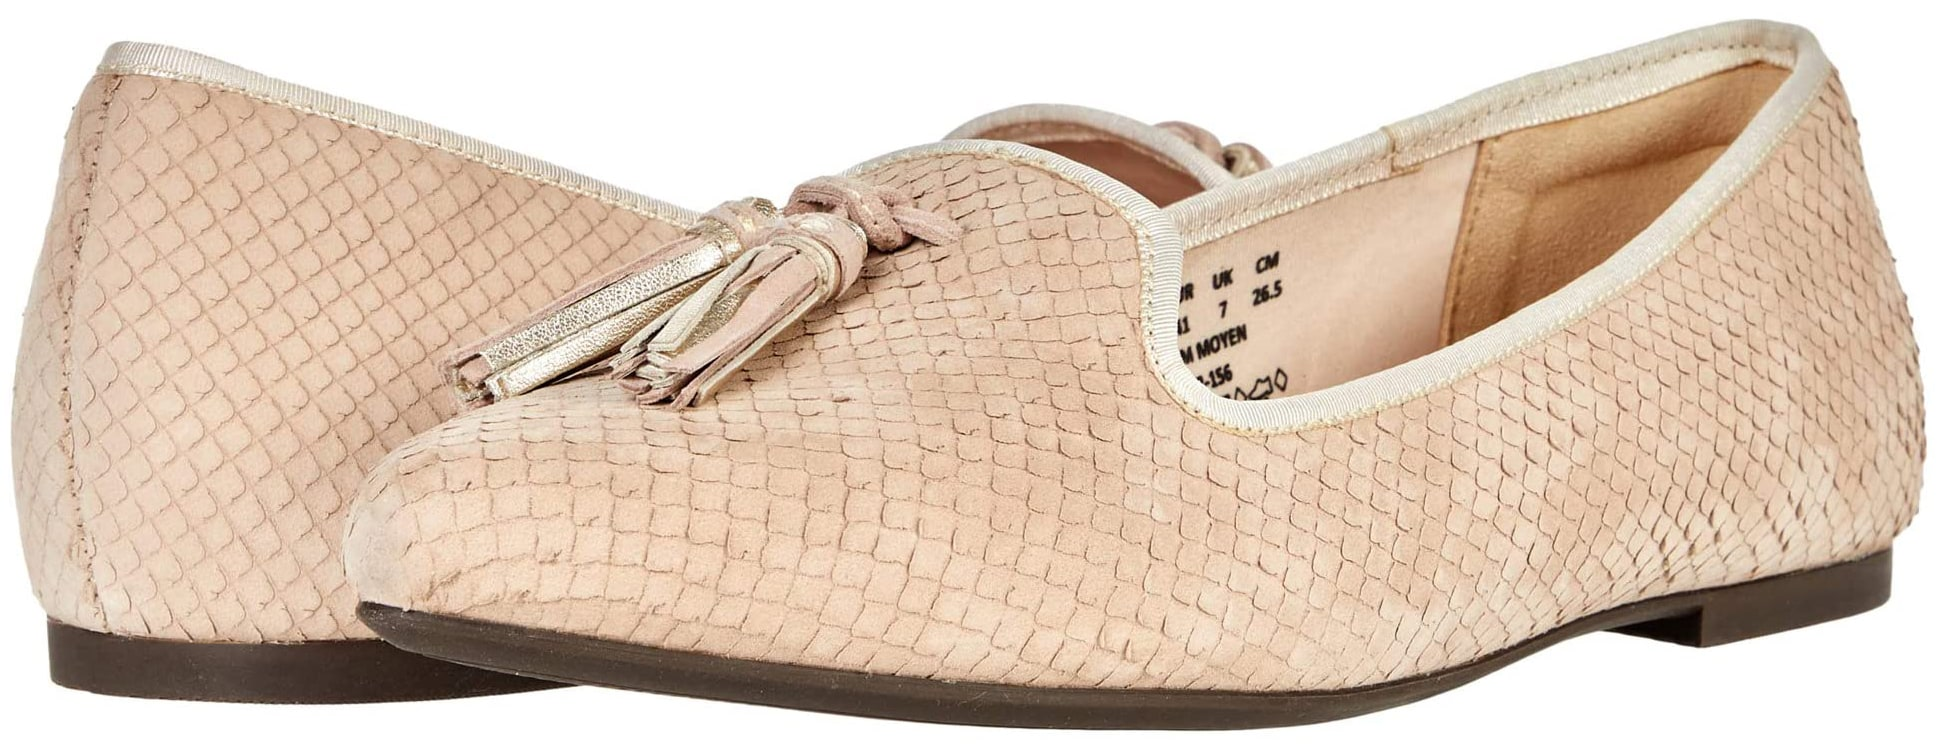 The Sadie flats from Hush Puppies come in an array of bright and neutral colors